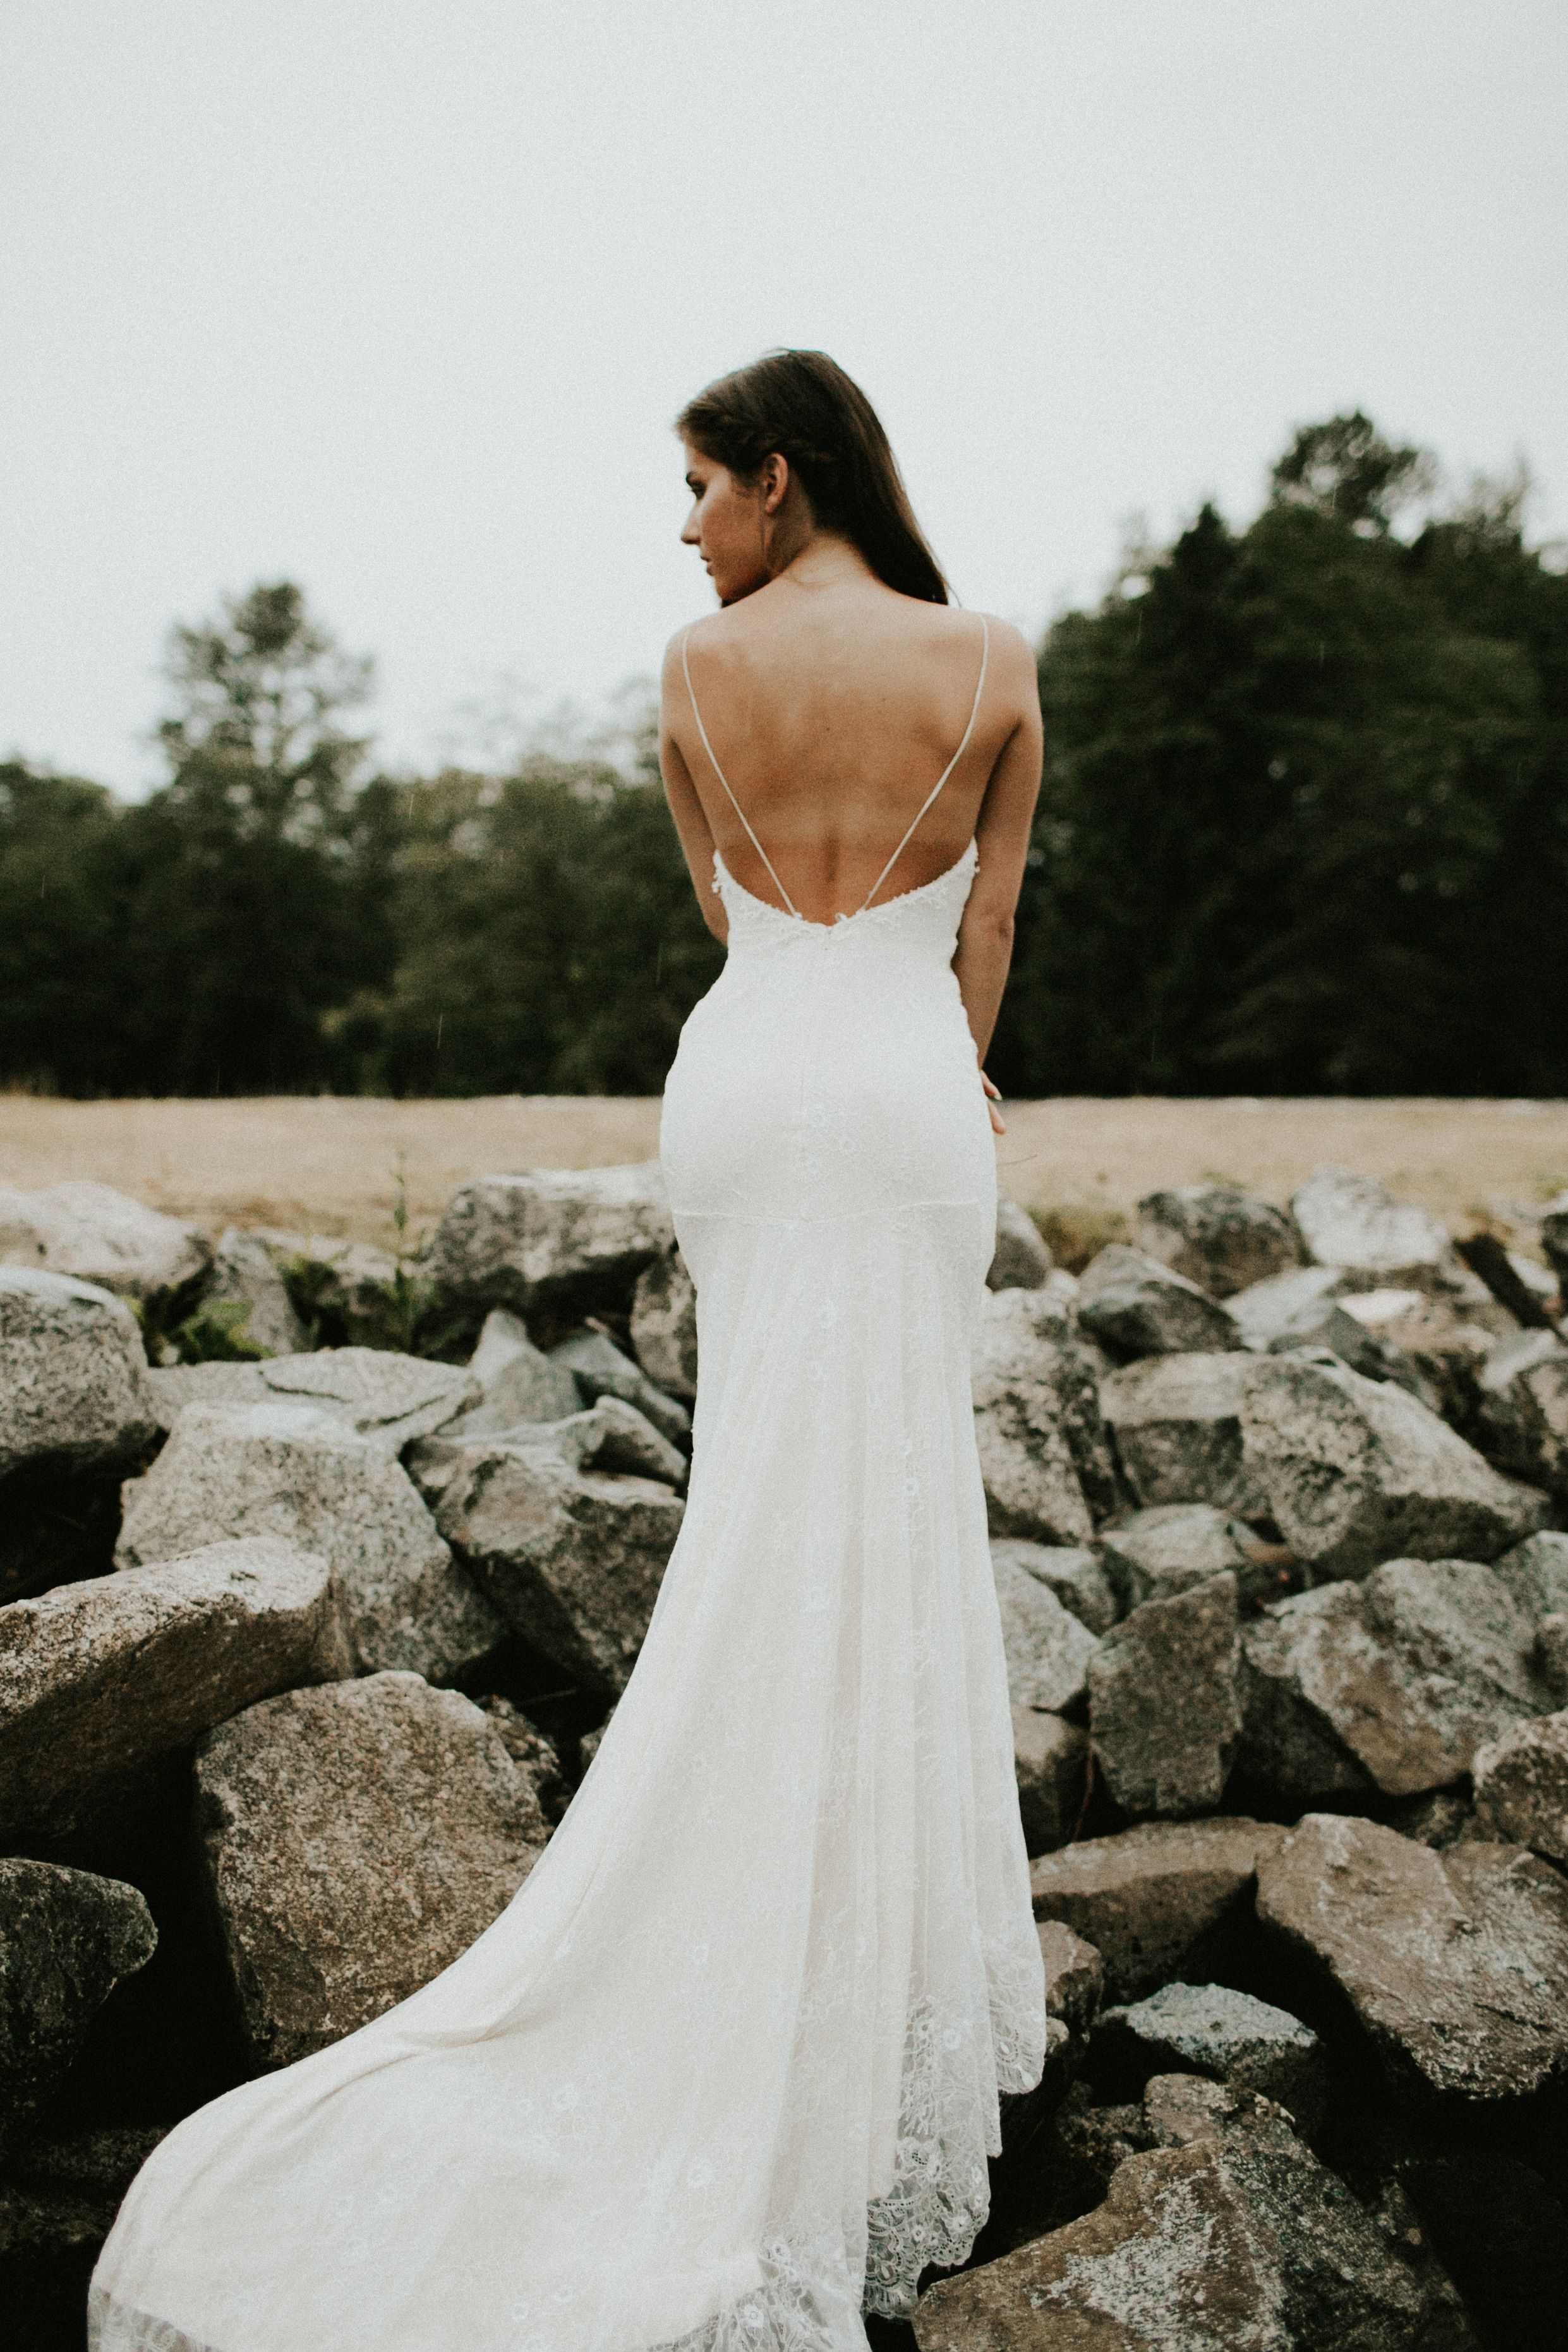 The Penny Gown Eco Friendly Bride Sustainable Fashion Handmade In Canada Wedding Dresses Gorgeous Wedding Dress Detailed Wedding Dress Wedding Dresses [ 3723 x 2482 Pixel ]